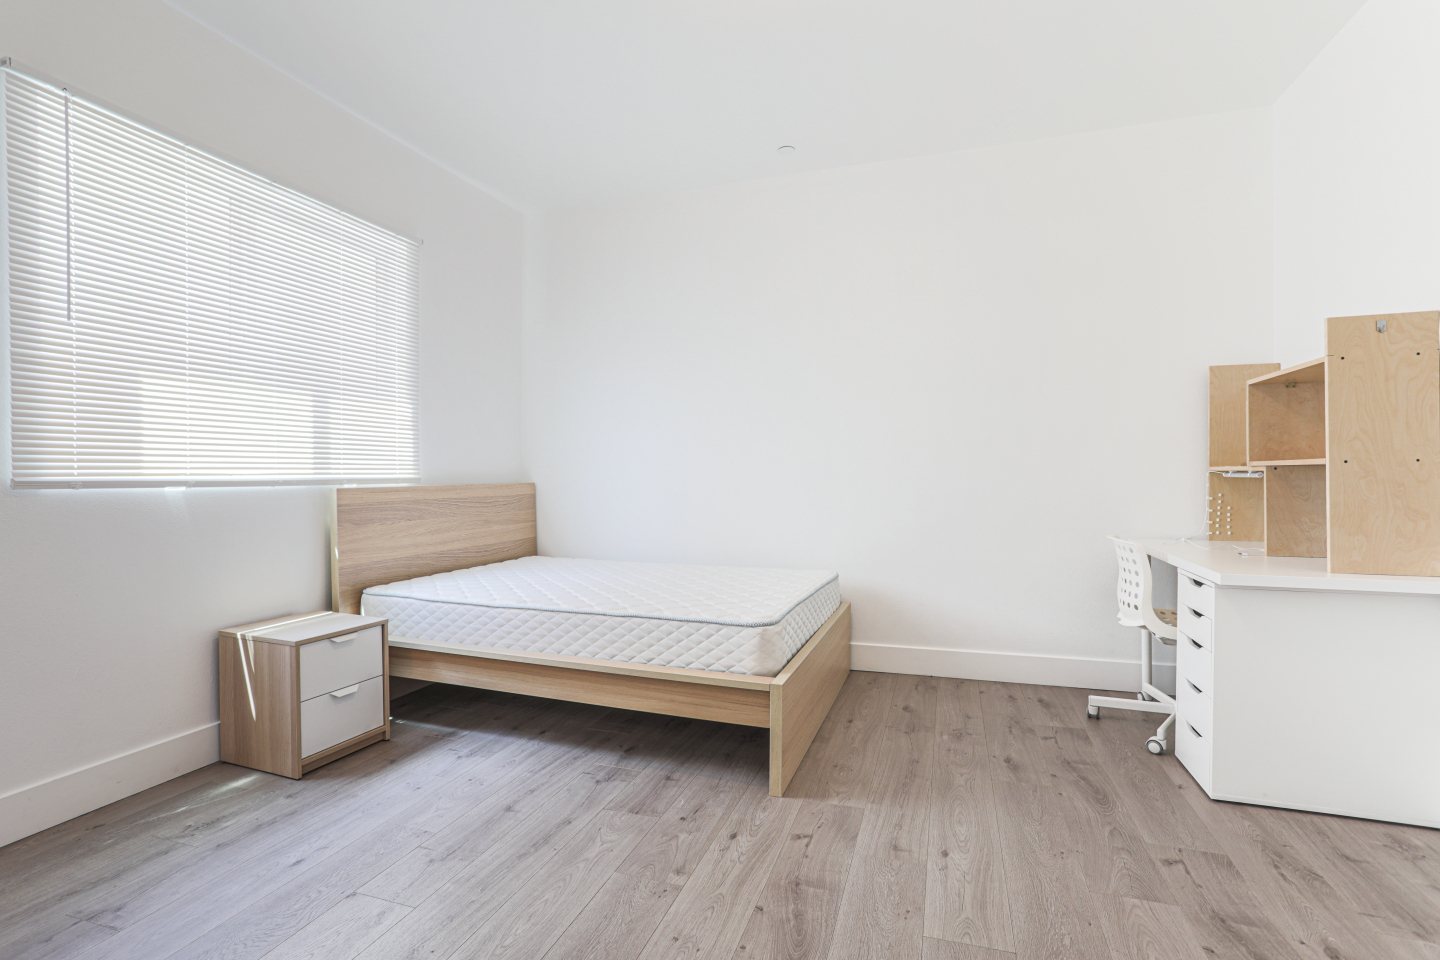 large bedroom with bed and hardwood flooring